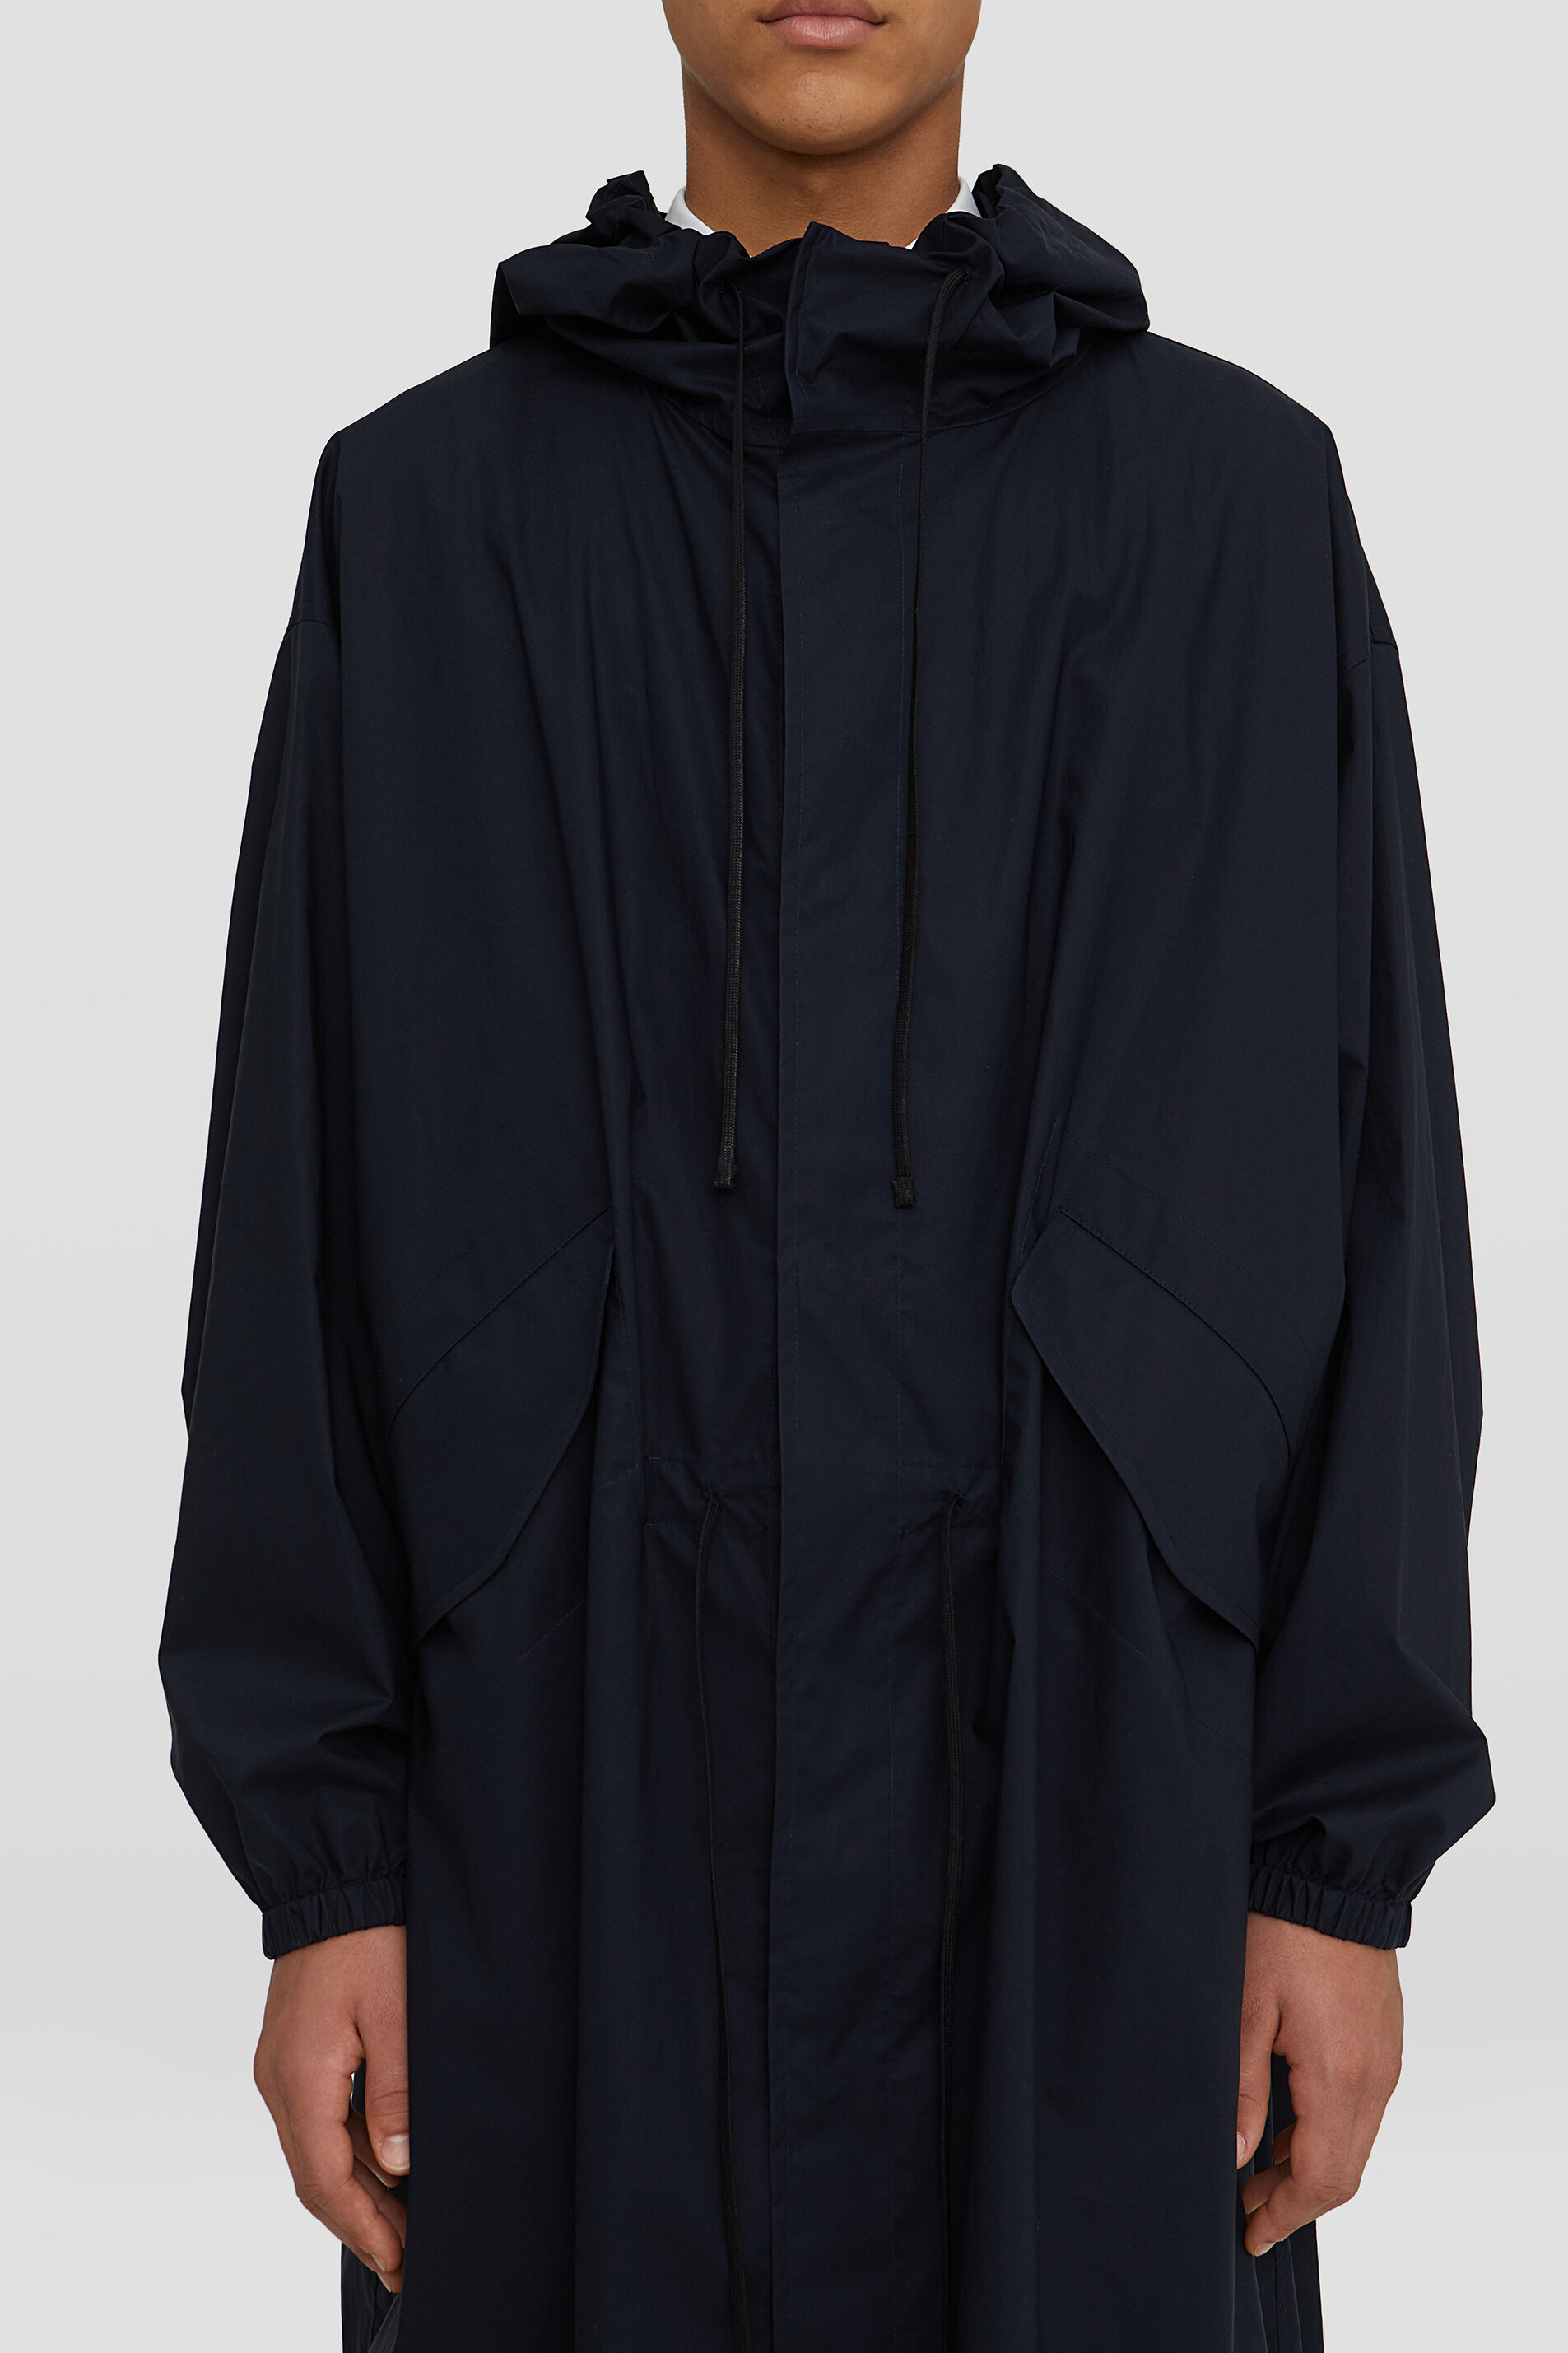 Parka, dark blue, large